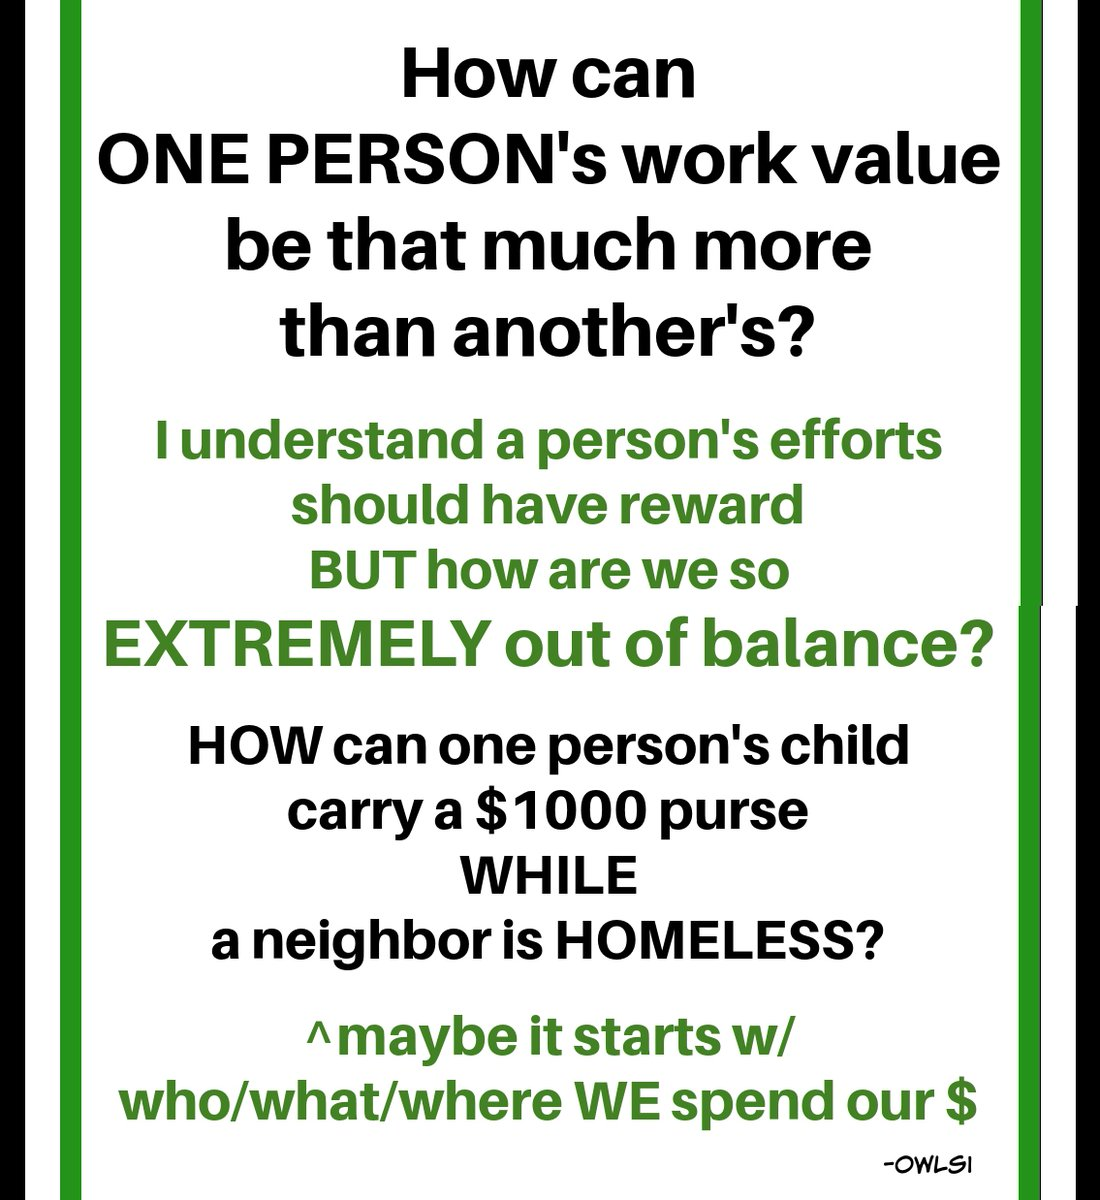 how can  1 PERSON's work value B THAT MUCH more than another's?  of course a person's efforts should have reward BUT how R we so EXTREMELY out of balance  HOW can 1 person's child carry a $1000 purse WHILE a neighbor is HOMELESS #BLM #LGBTQ #BIDENHARRIS #equality @AllTransLivesM1 https://t.co/FxmSPHJ2fM https://t.co/0sr0sp6EQI